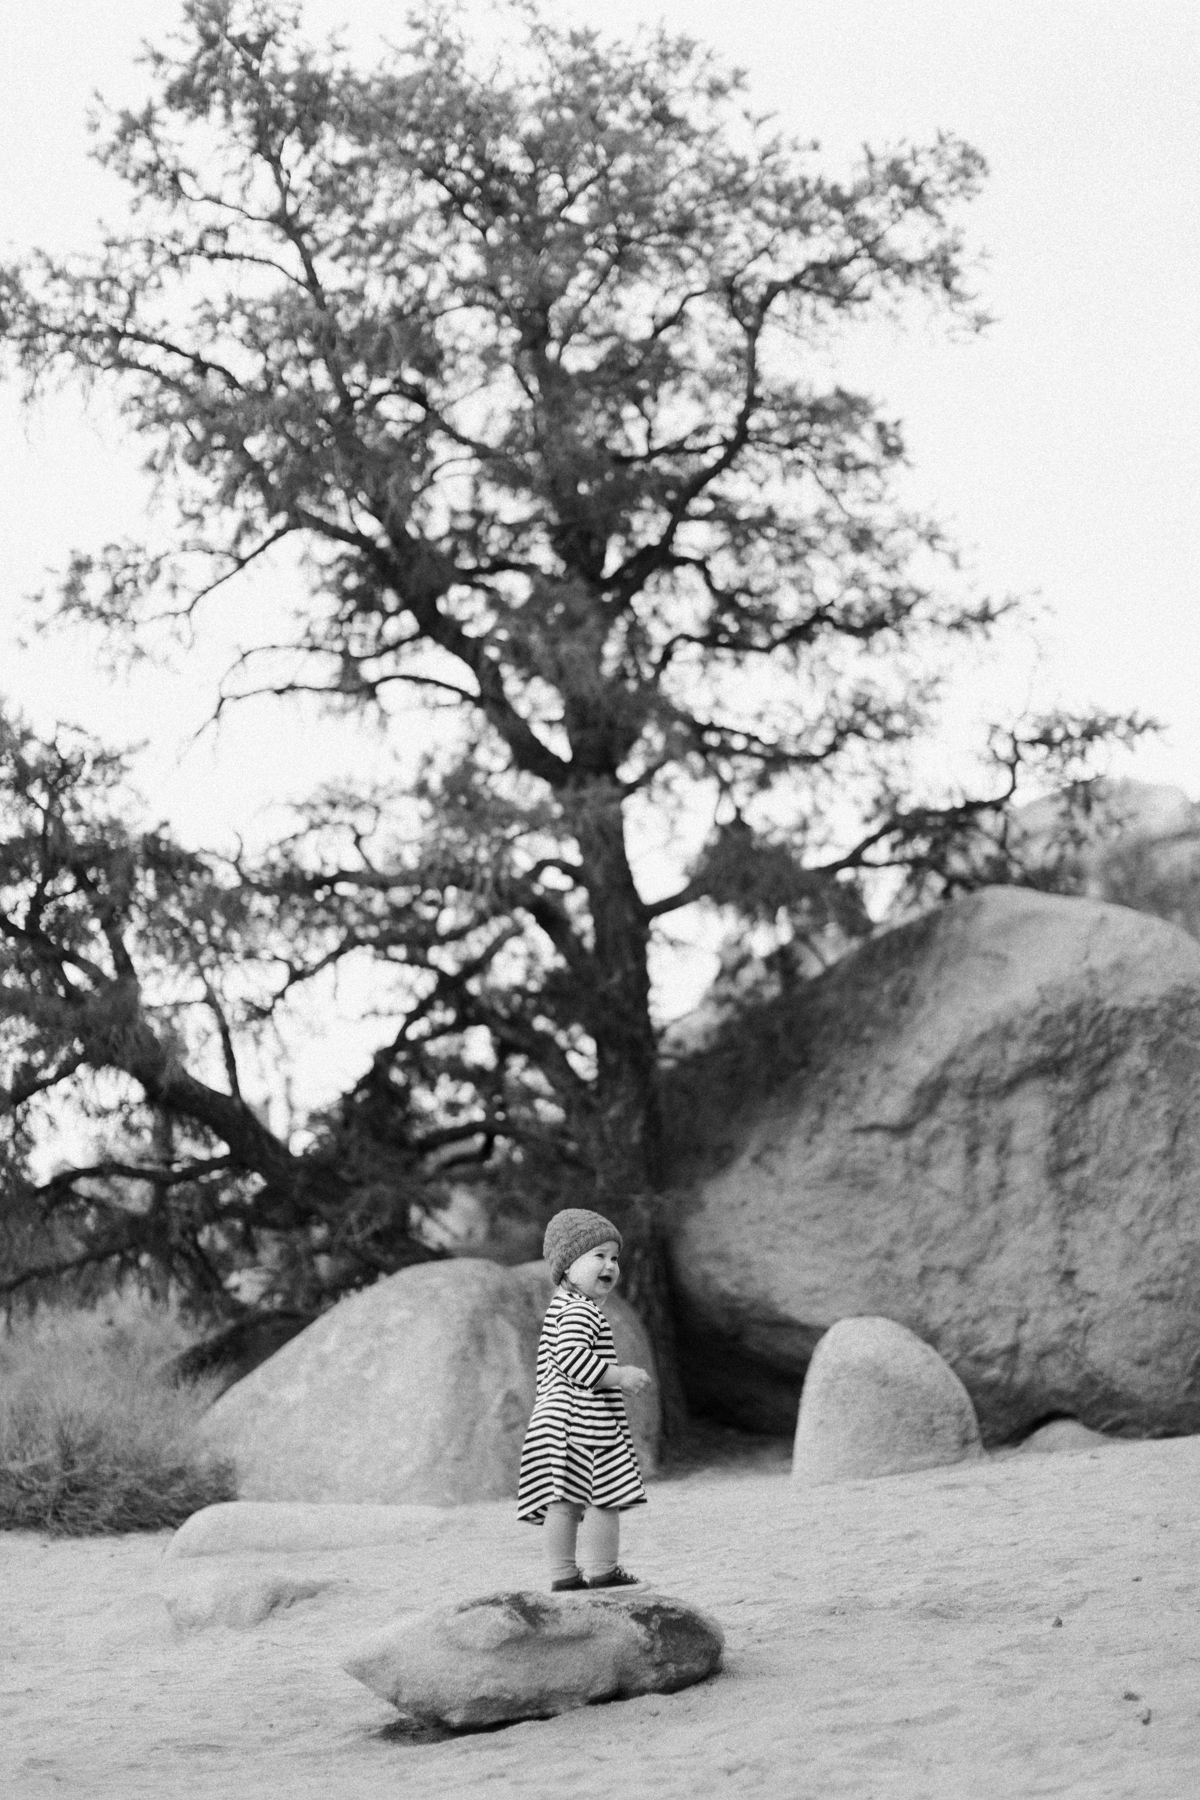 Joshua-Tree-calgary-kids-photography-shop-the-skinny-6.jpg